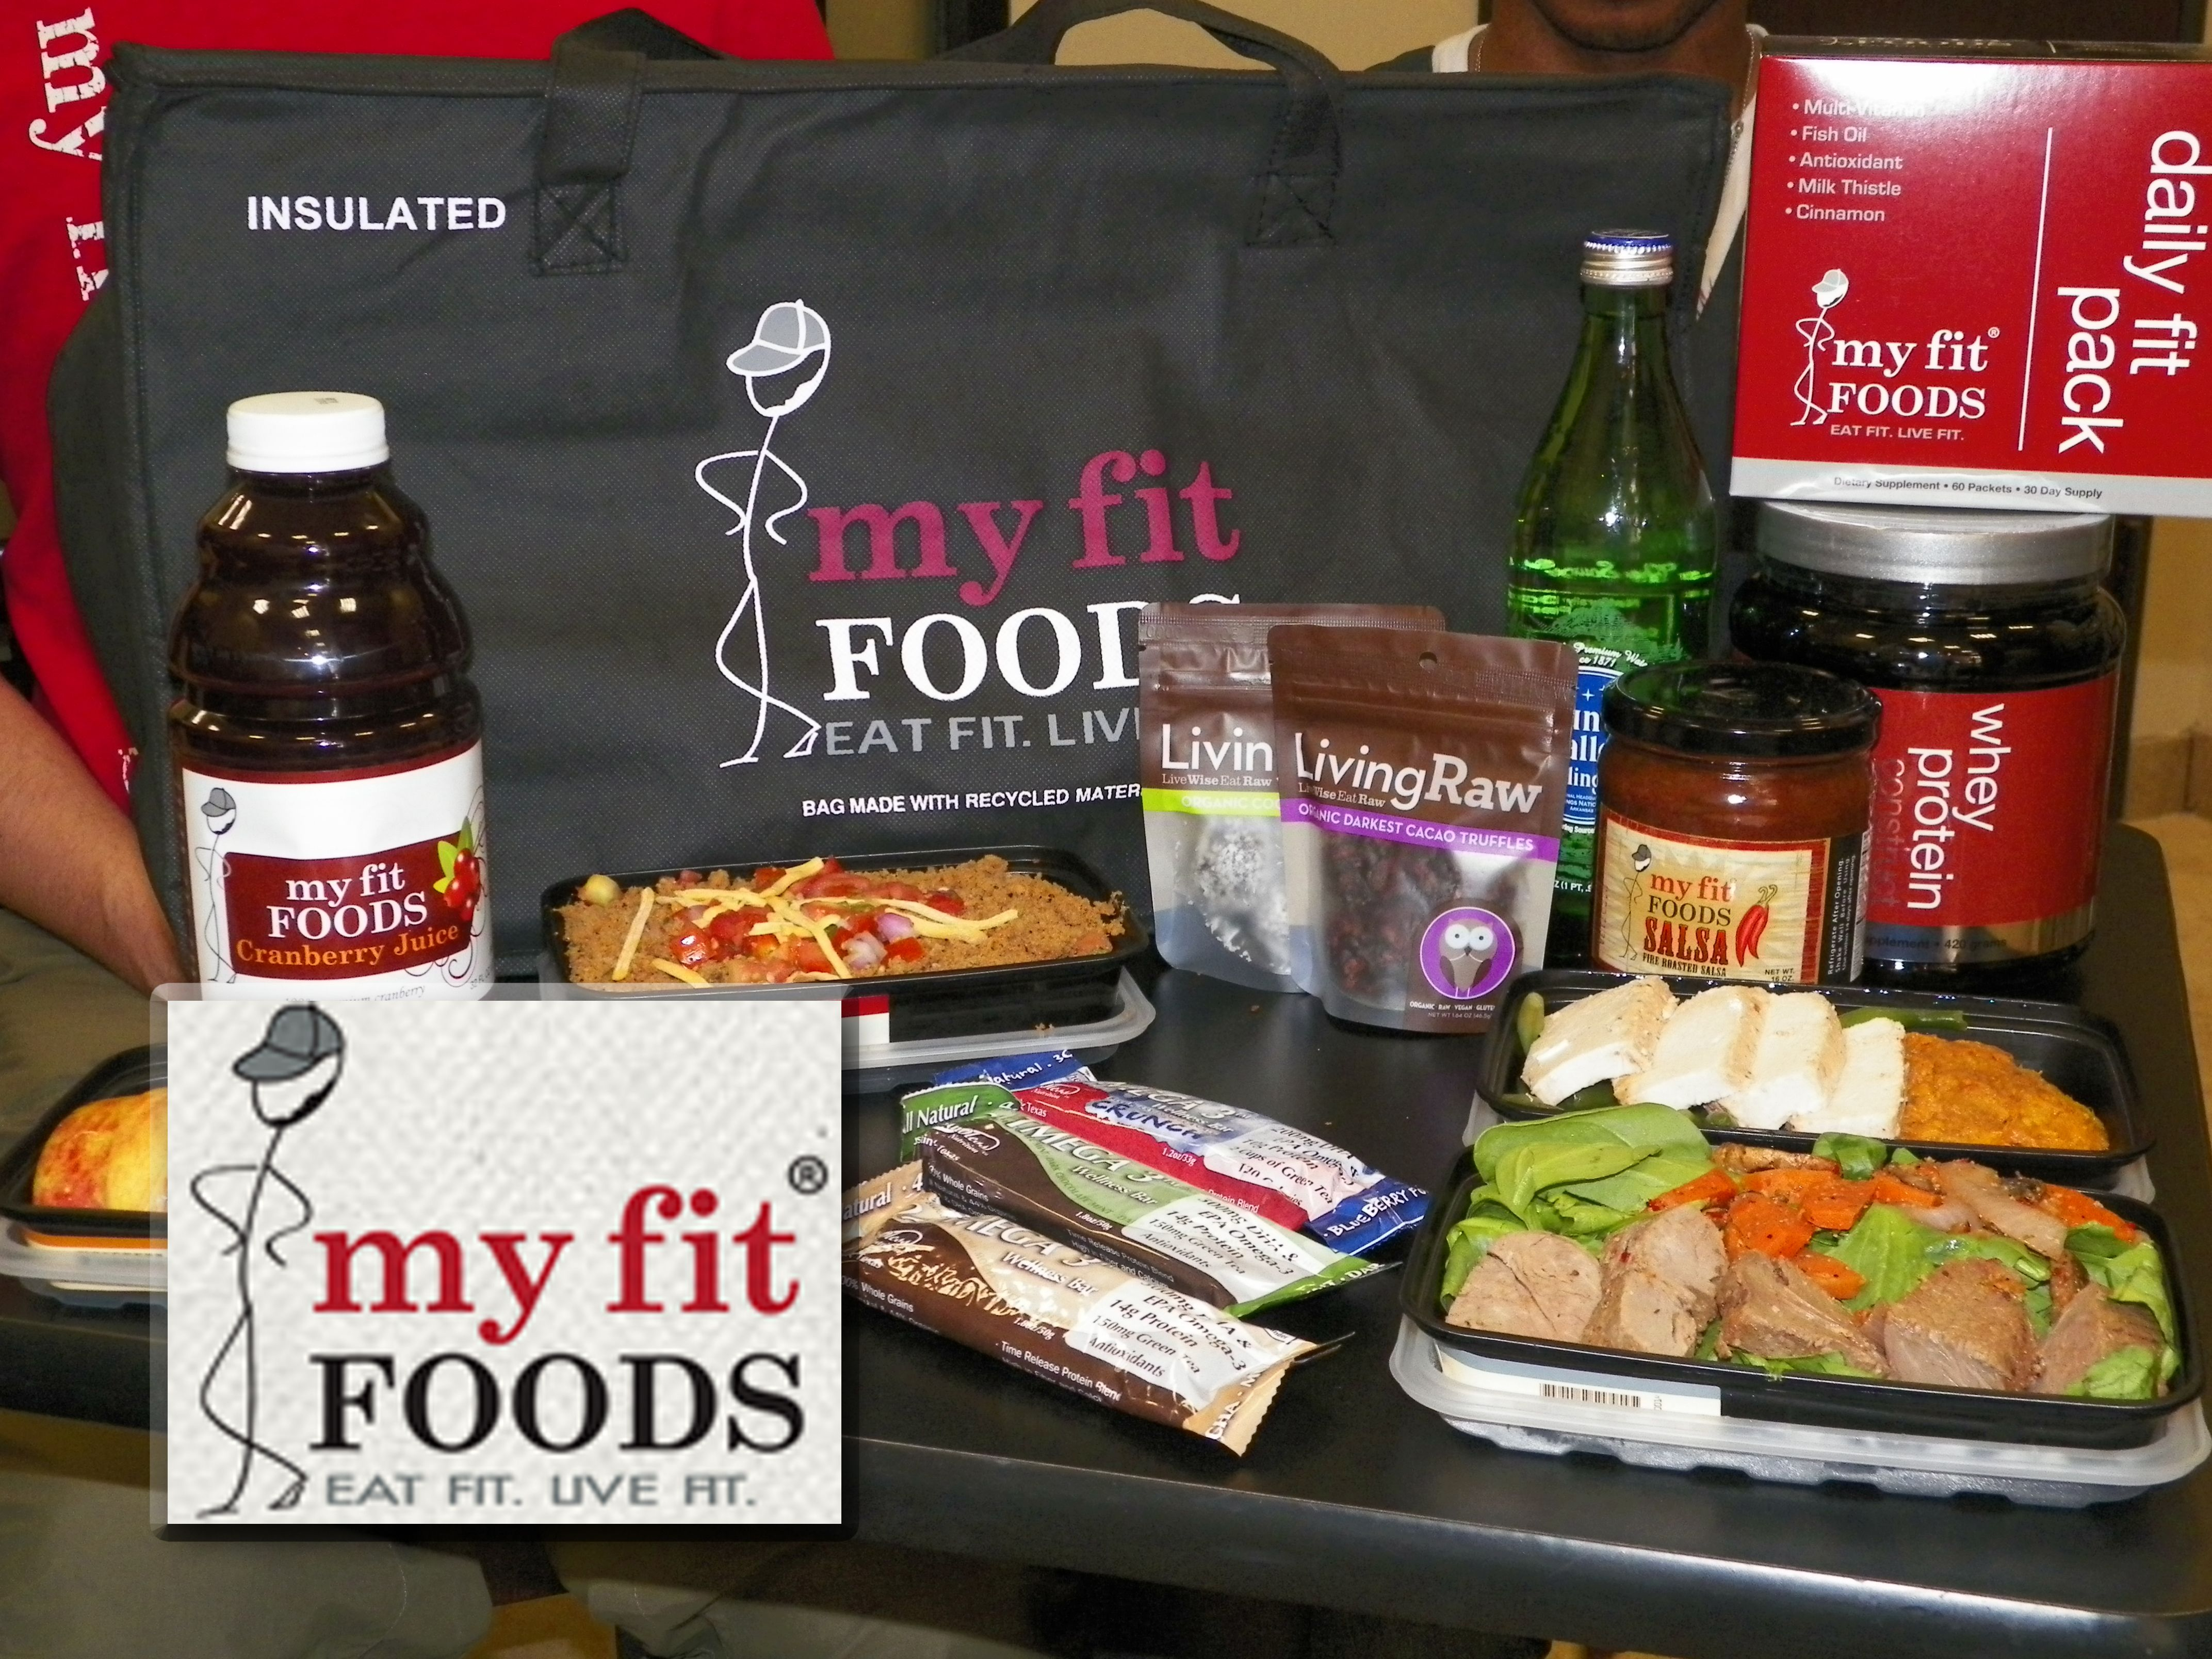 Delicious food from my fit foods starting 21 day challenge